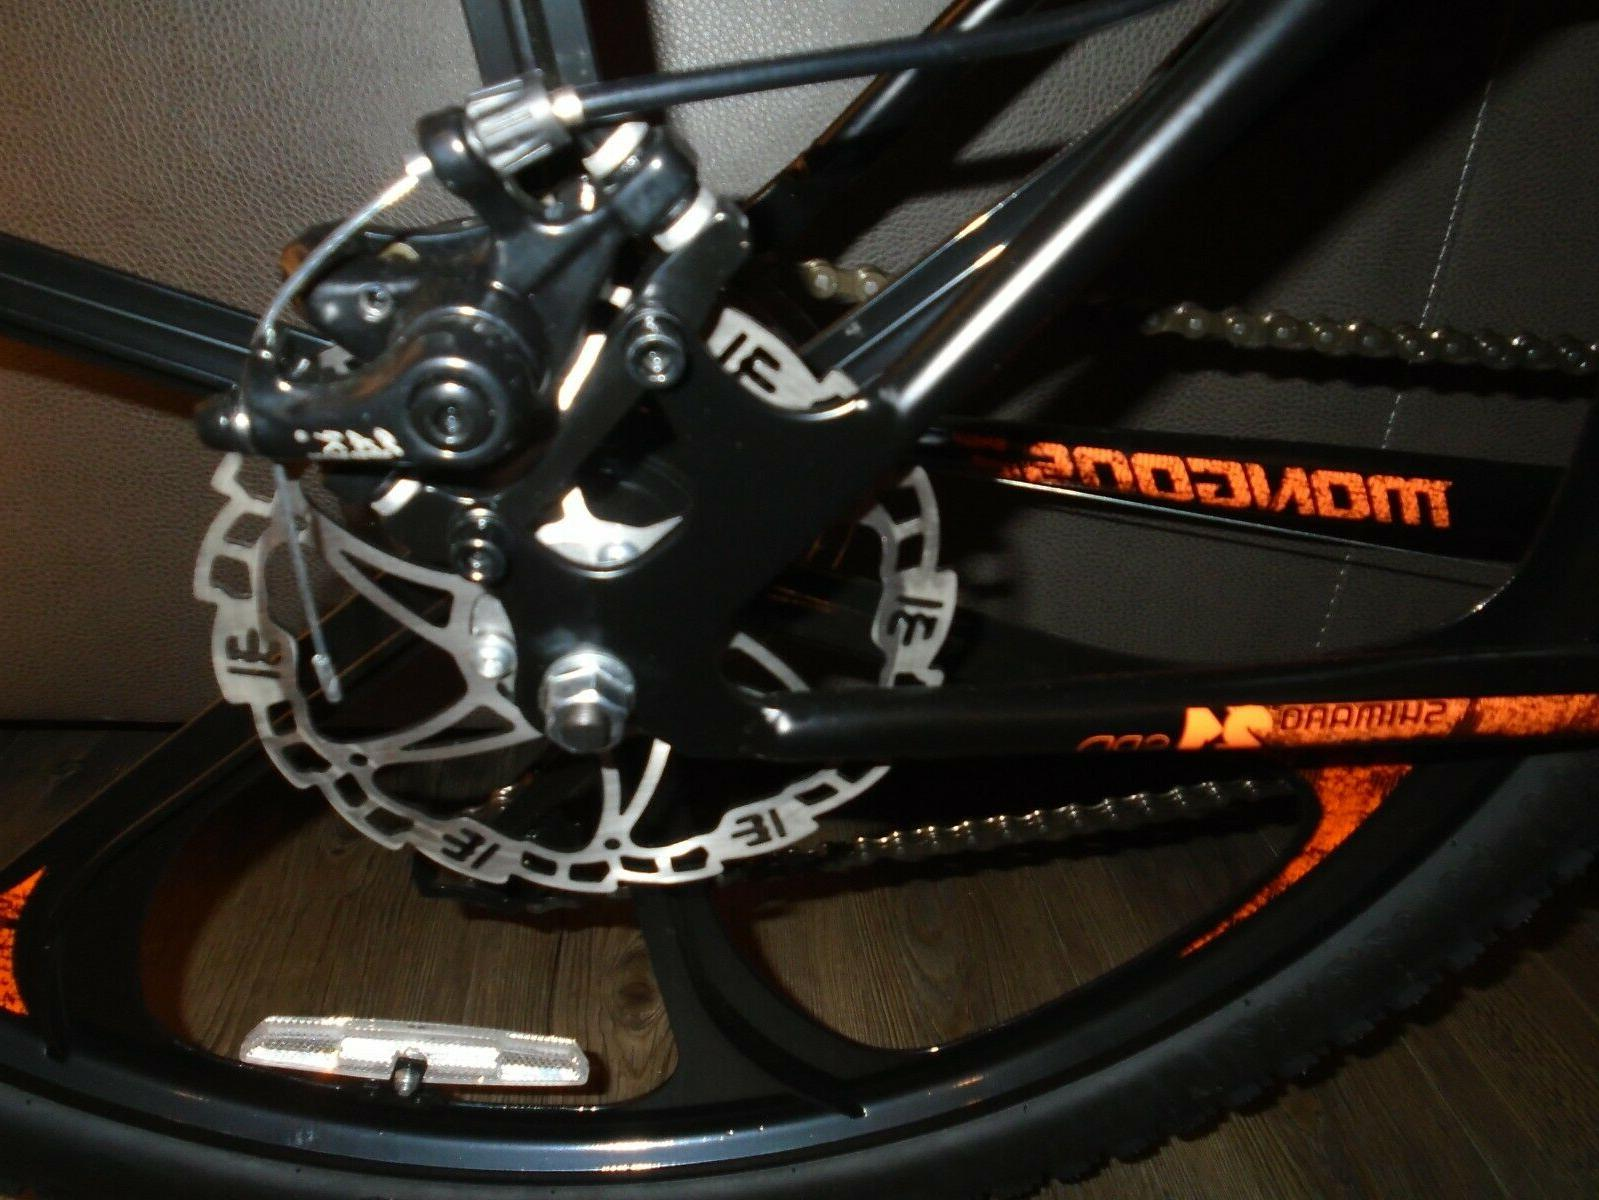 MENS BLACK/ORANGE 21-SPEED MOUNTAIN BIKE NEW